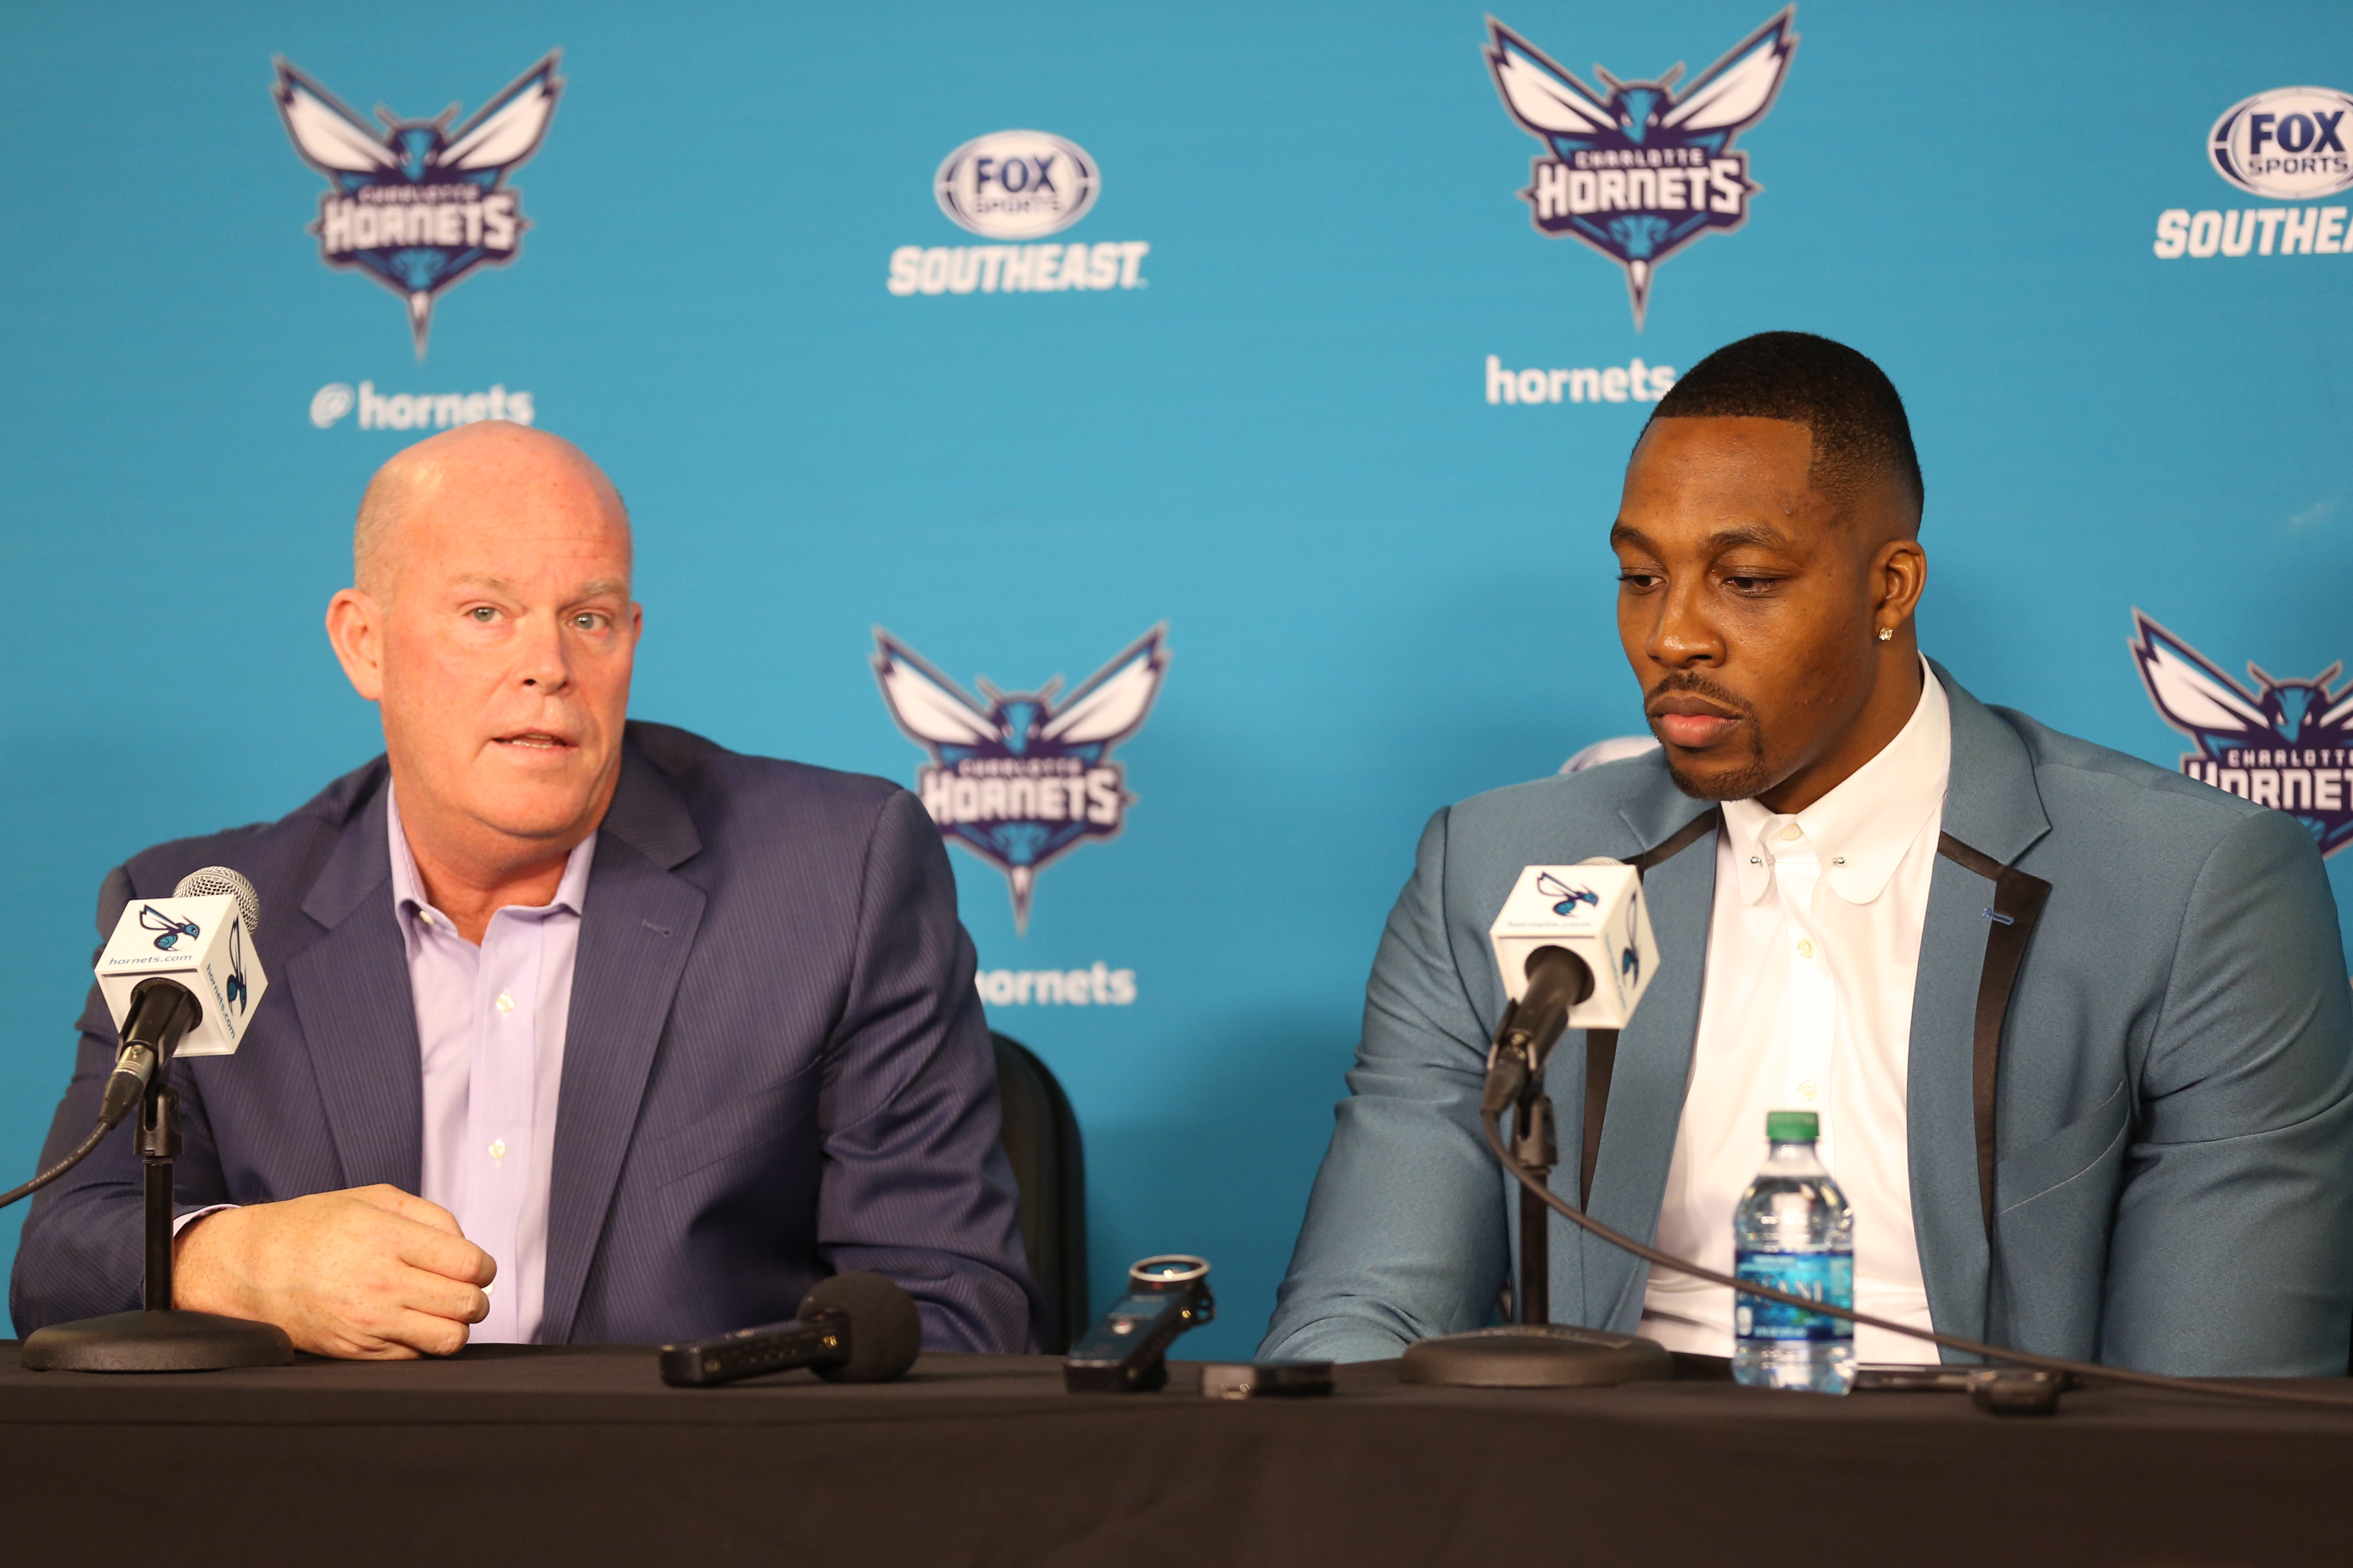 801438052-charlotte-hornets-introduce-dwight-howard-during-press-conference.jpg